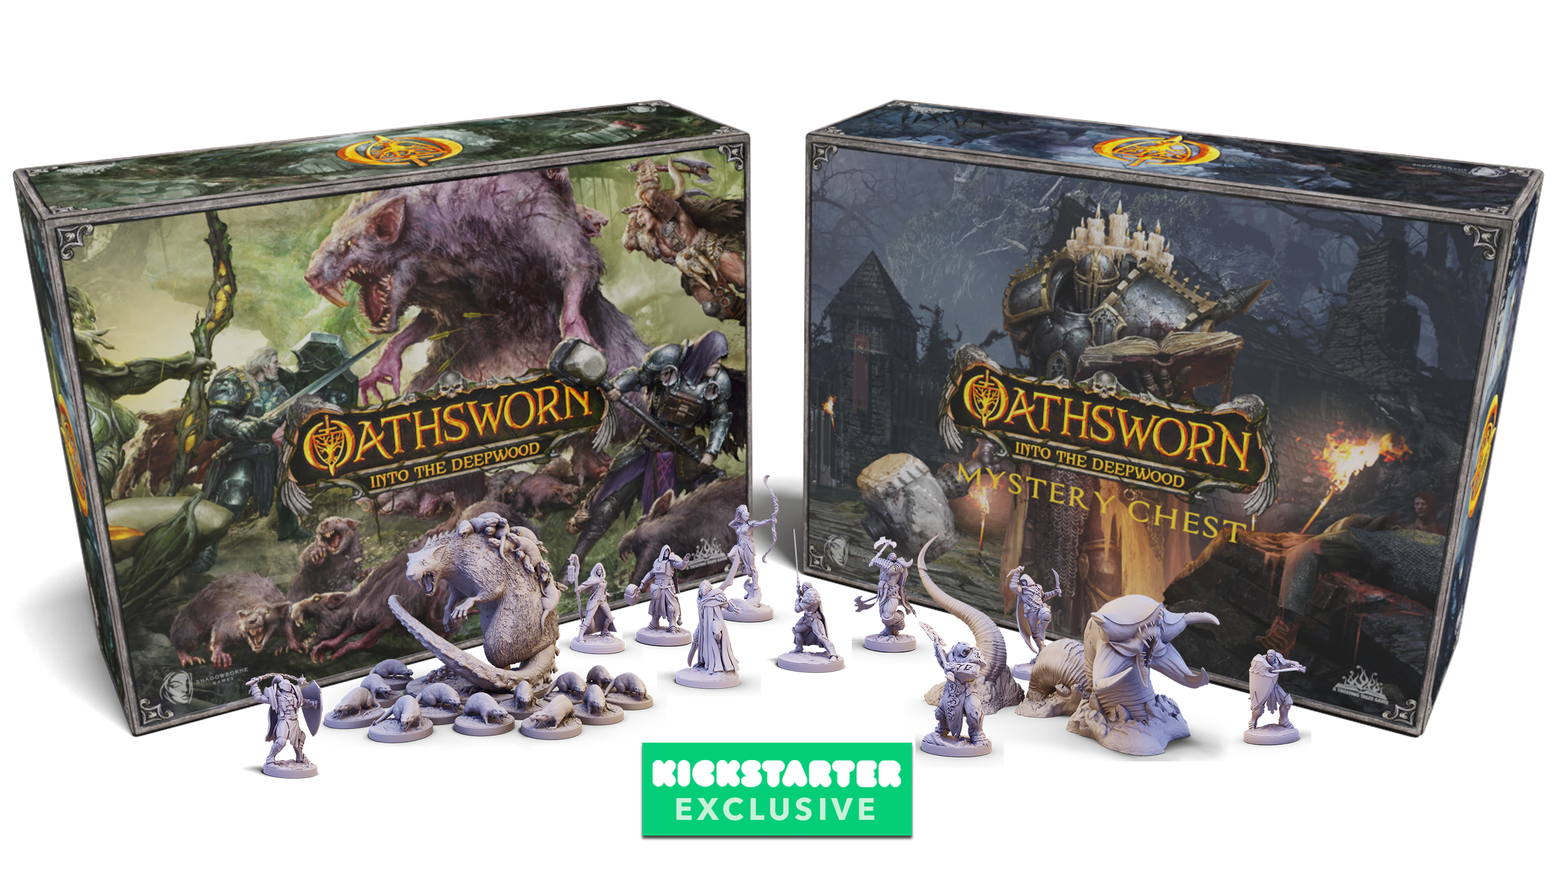 A Grand 1-4 Player Dark Fantasy Board Game. Epic Story, Brand New Mechanics and Giant Monsters.